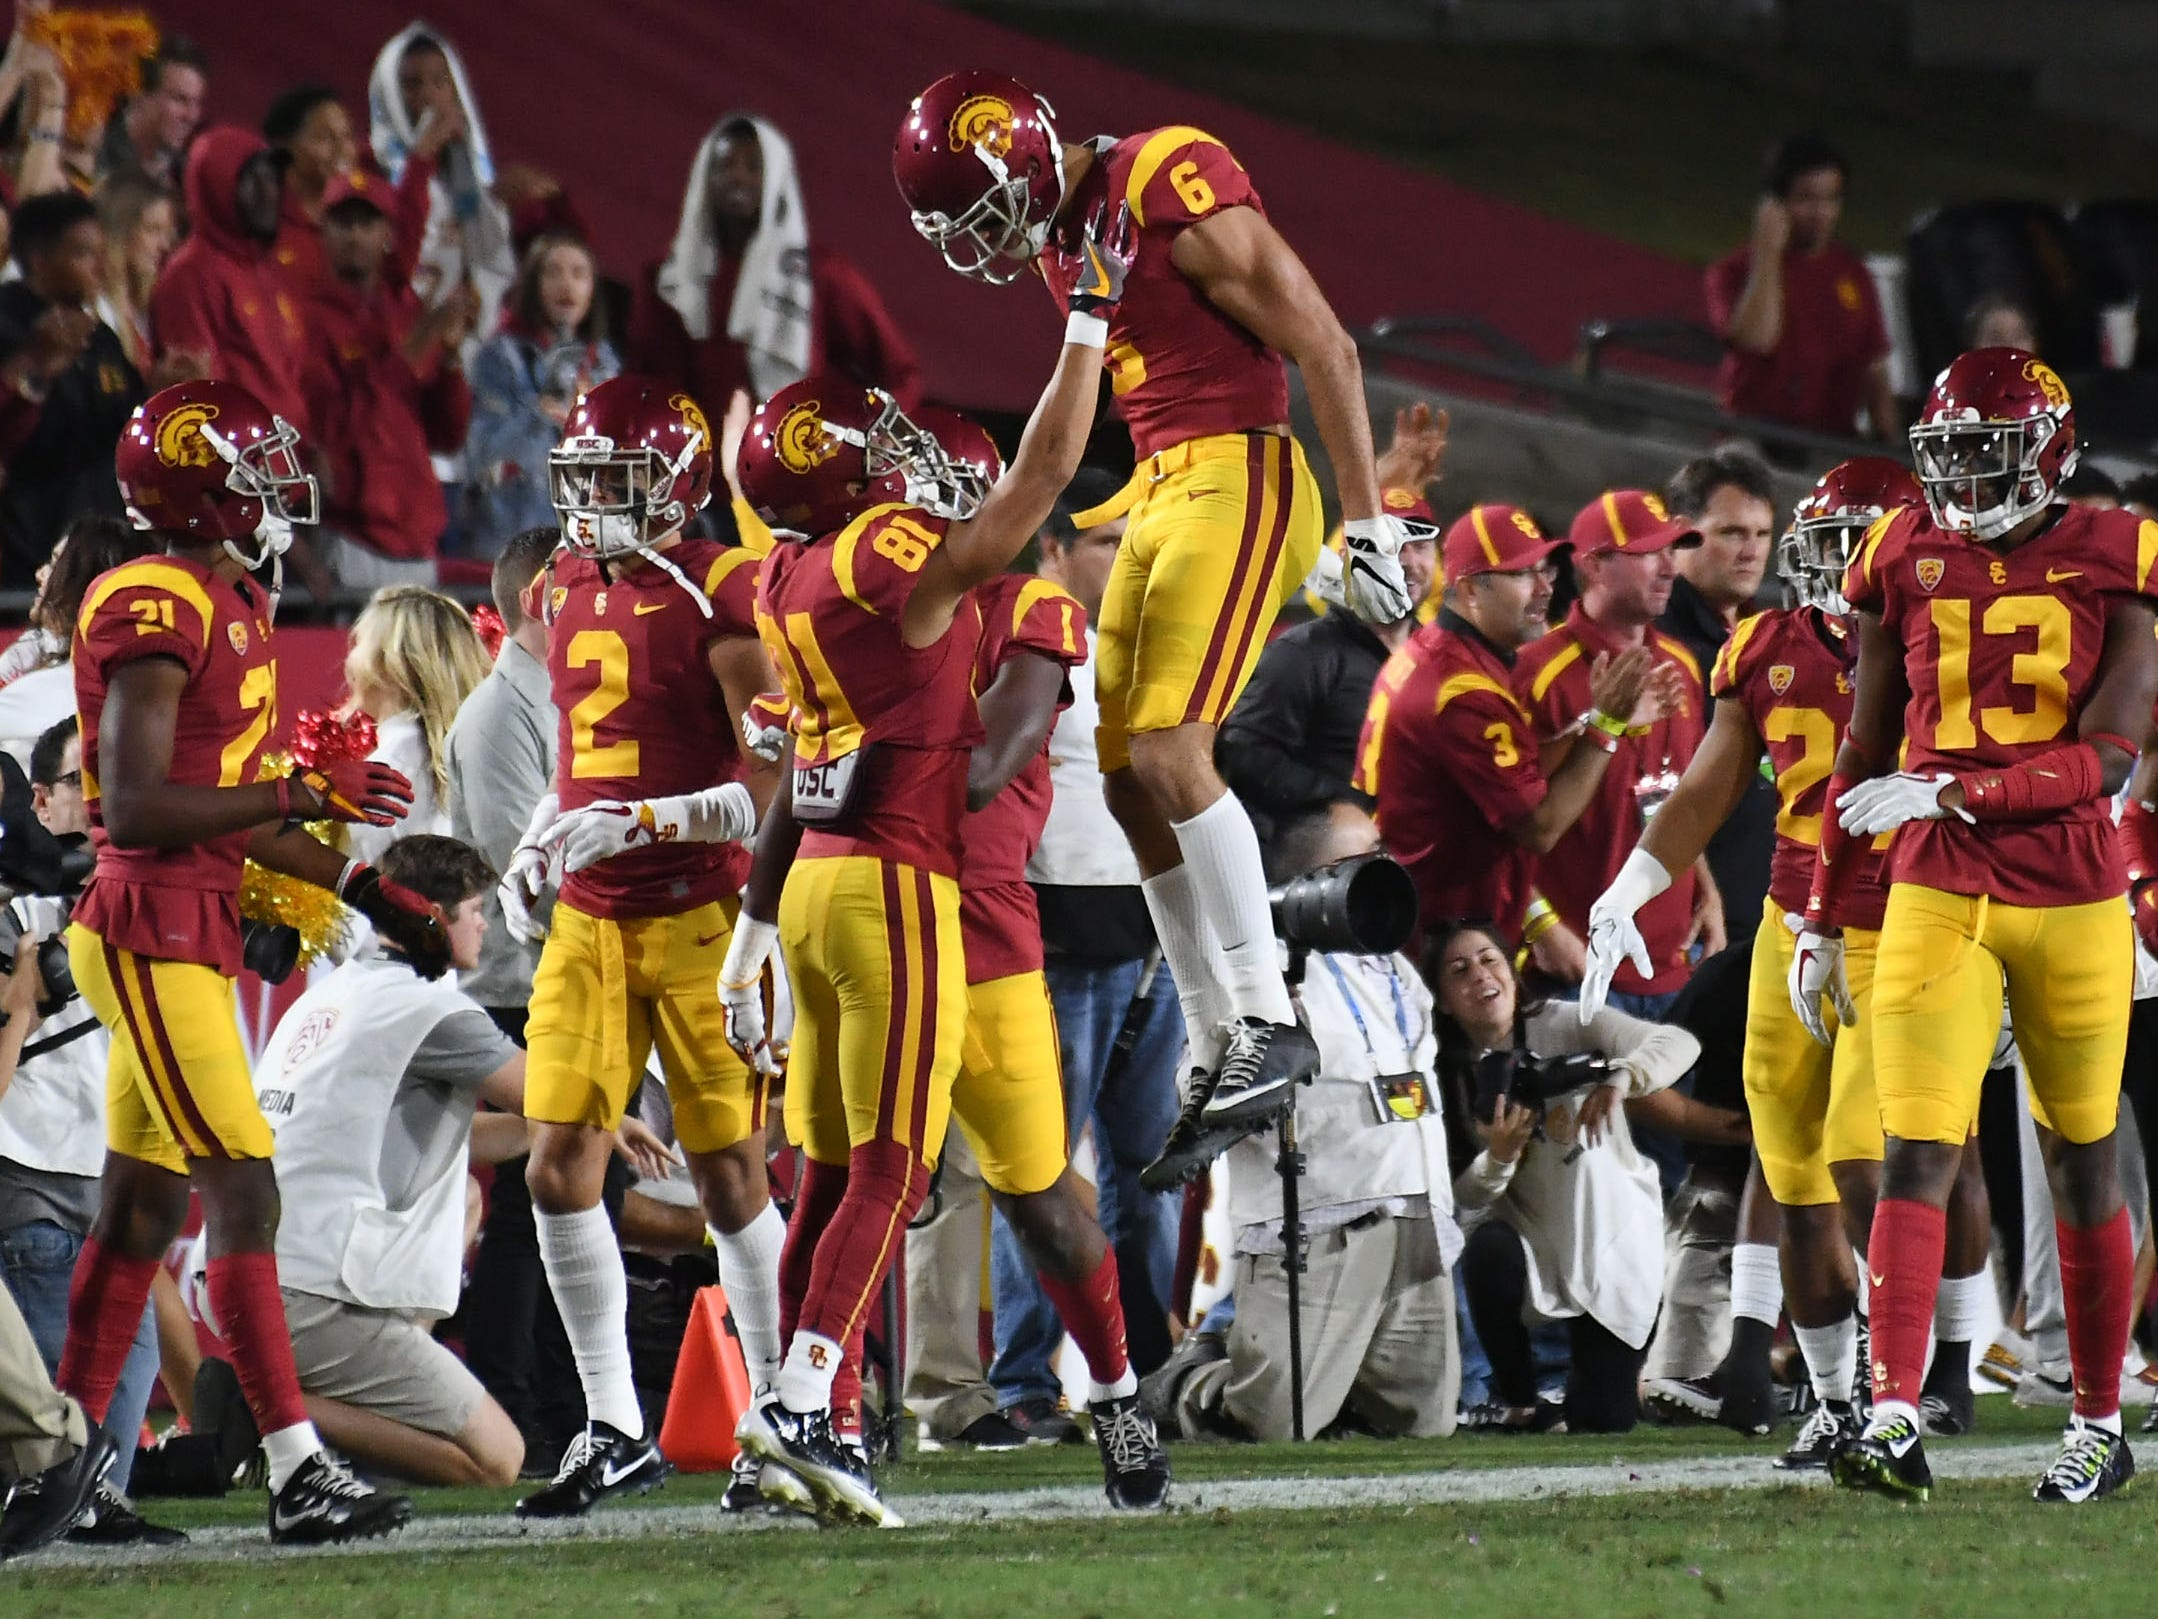 No. 15 Southern California Trojans (11-3 in 2017).